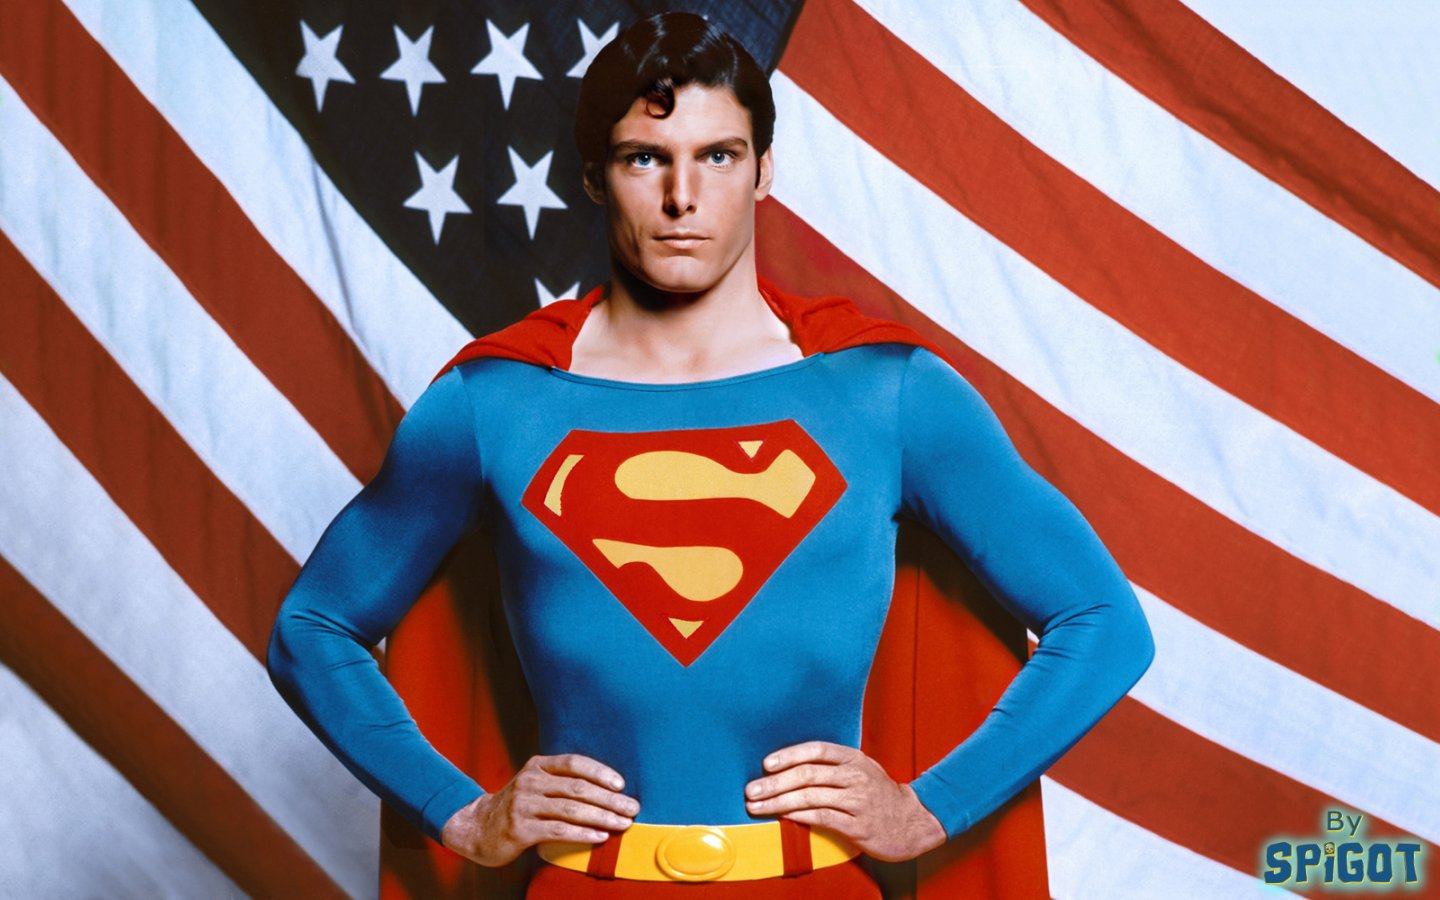 christopher reeve in superman Christopher reeve was born september 25, 1952 in new york city he had various stage and television roles before becoming the star of superman and its sequels.